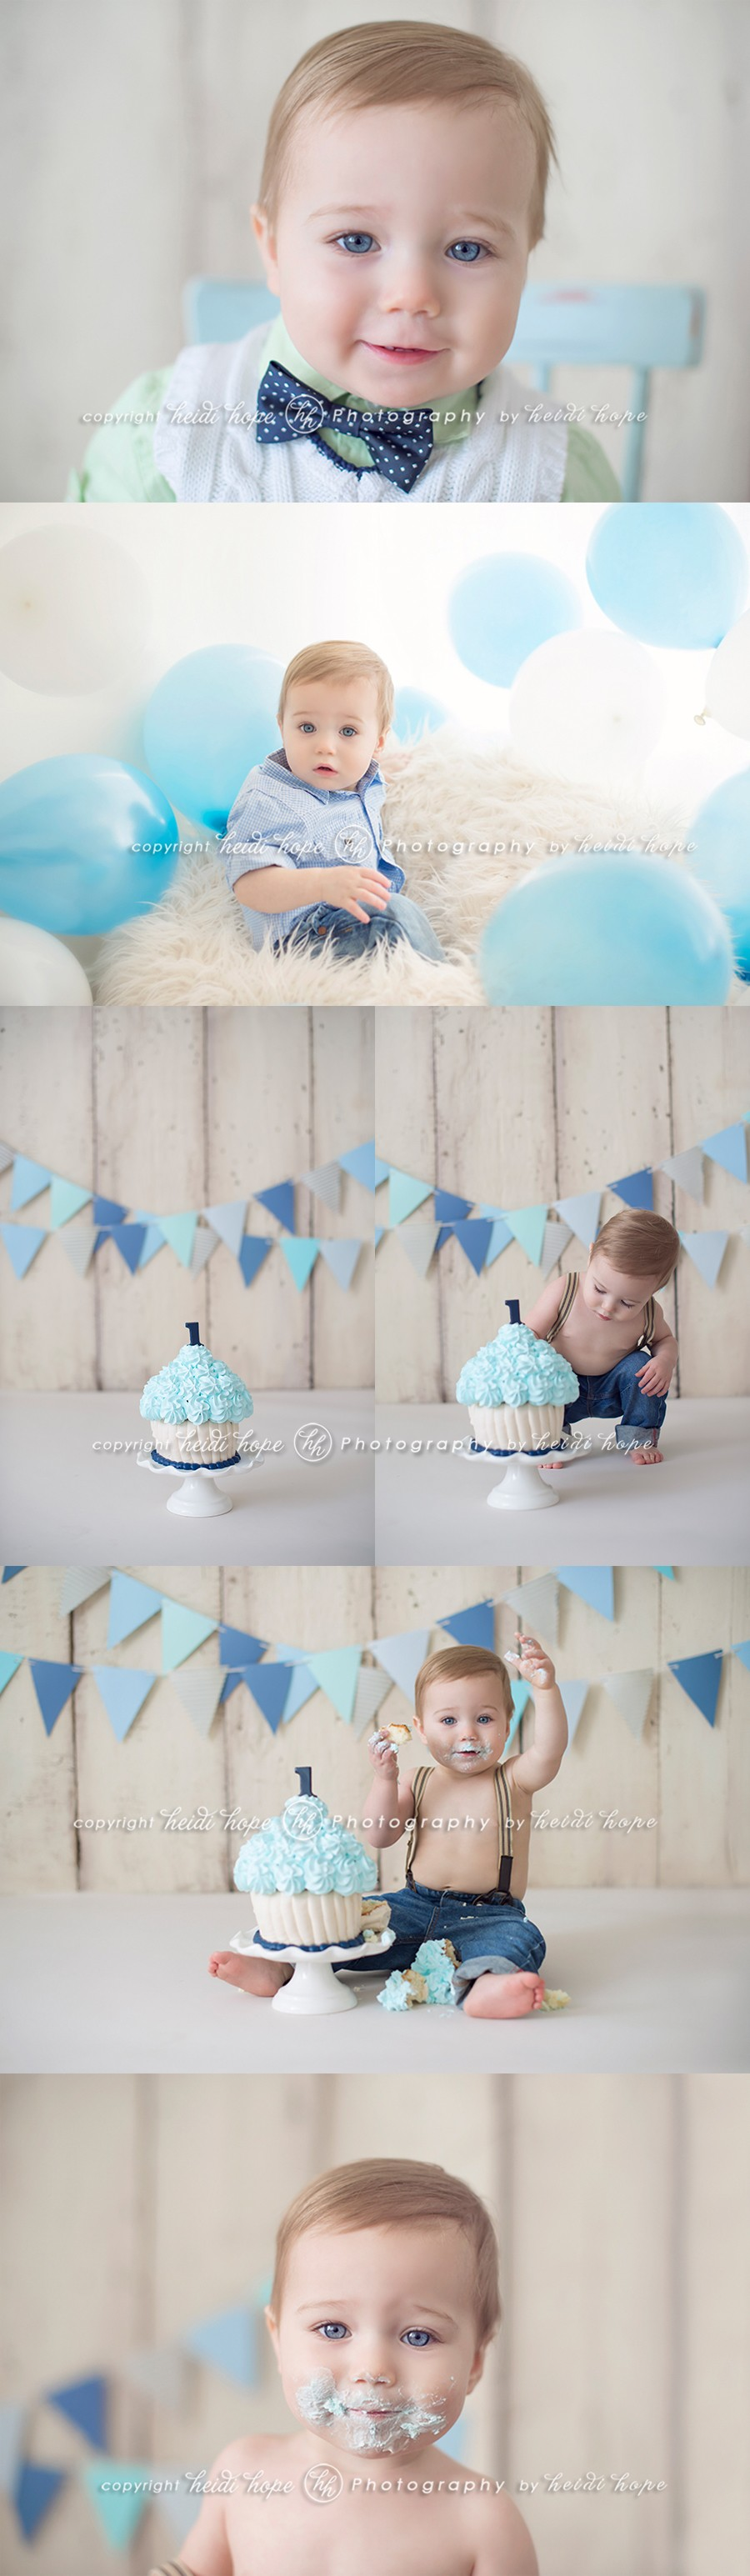 classic-baby-boy-cake-smash-portraits-blue